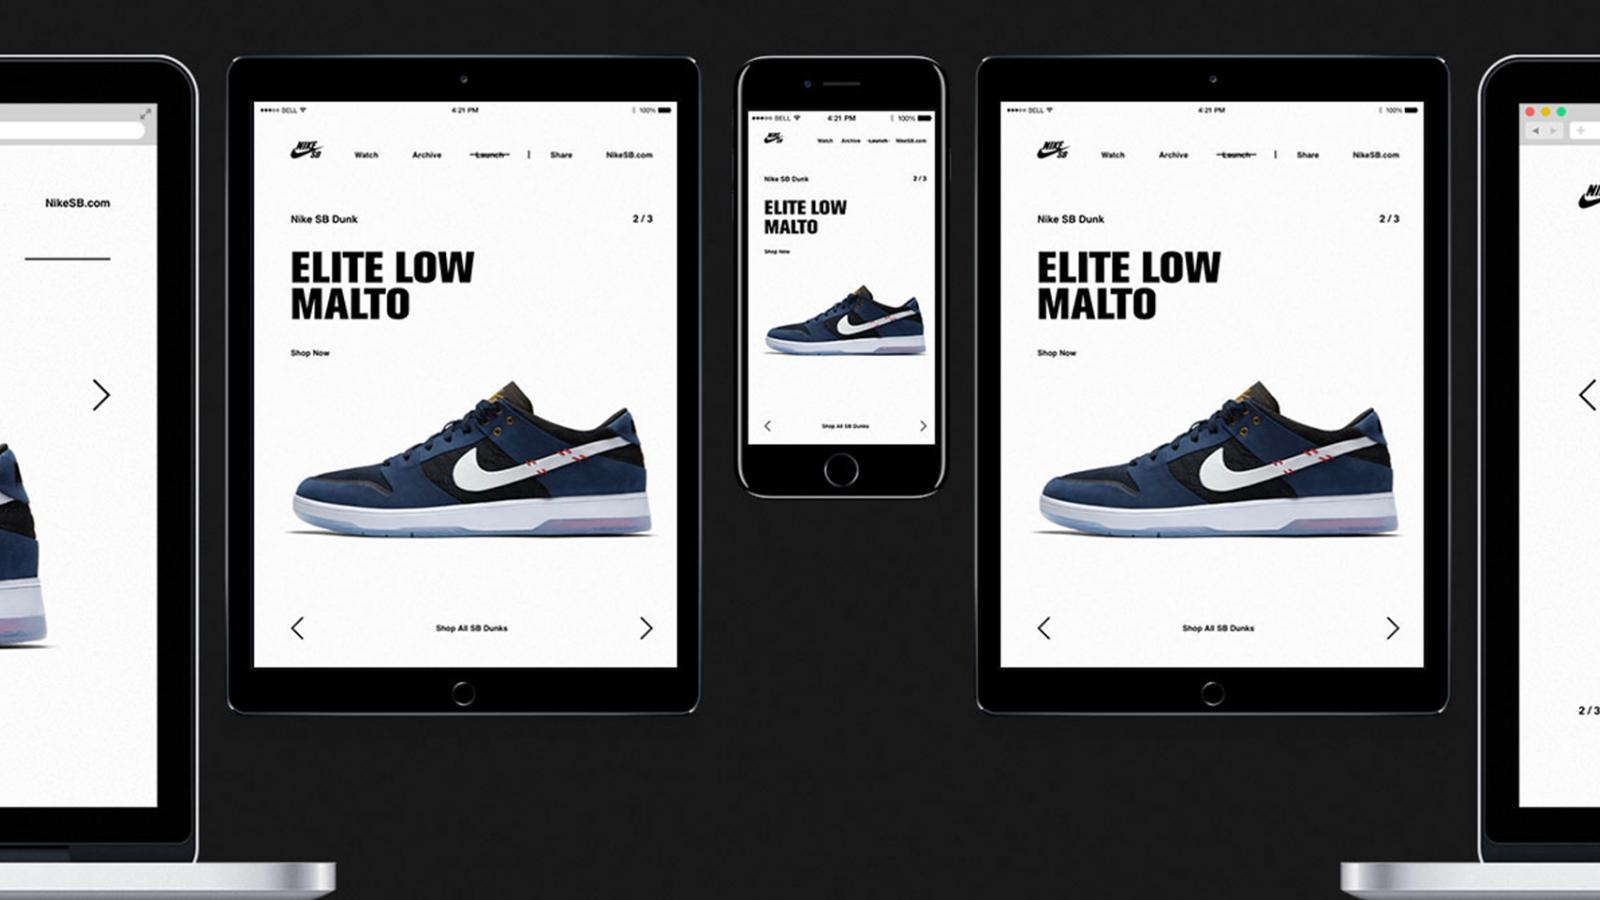 Web Design for the 15 Years of Nike SB Dunk